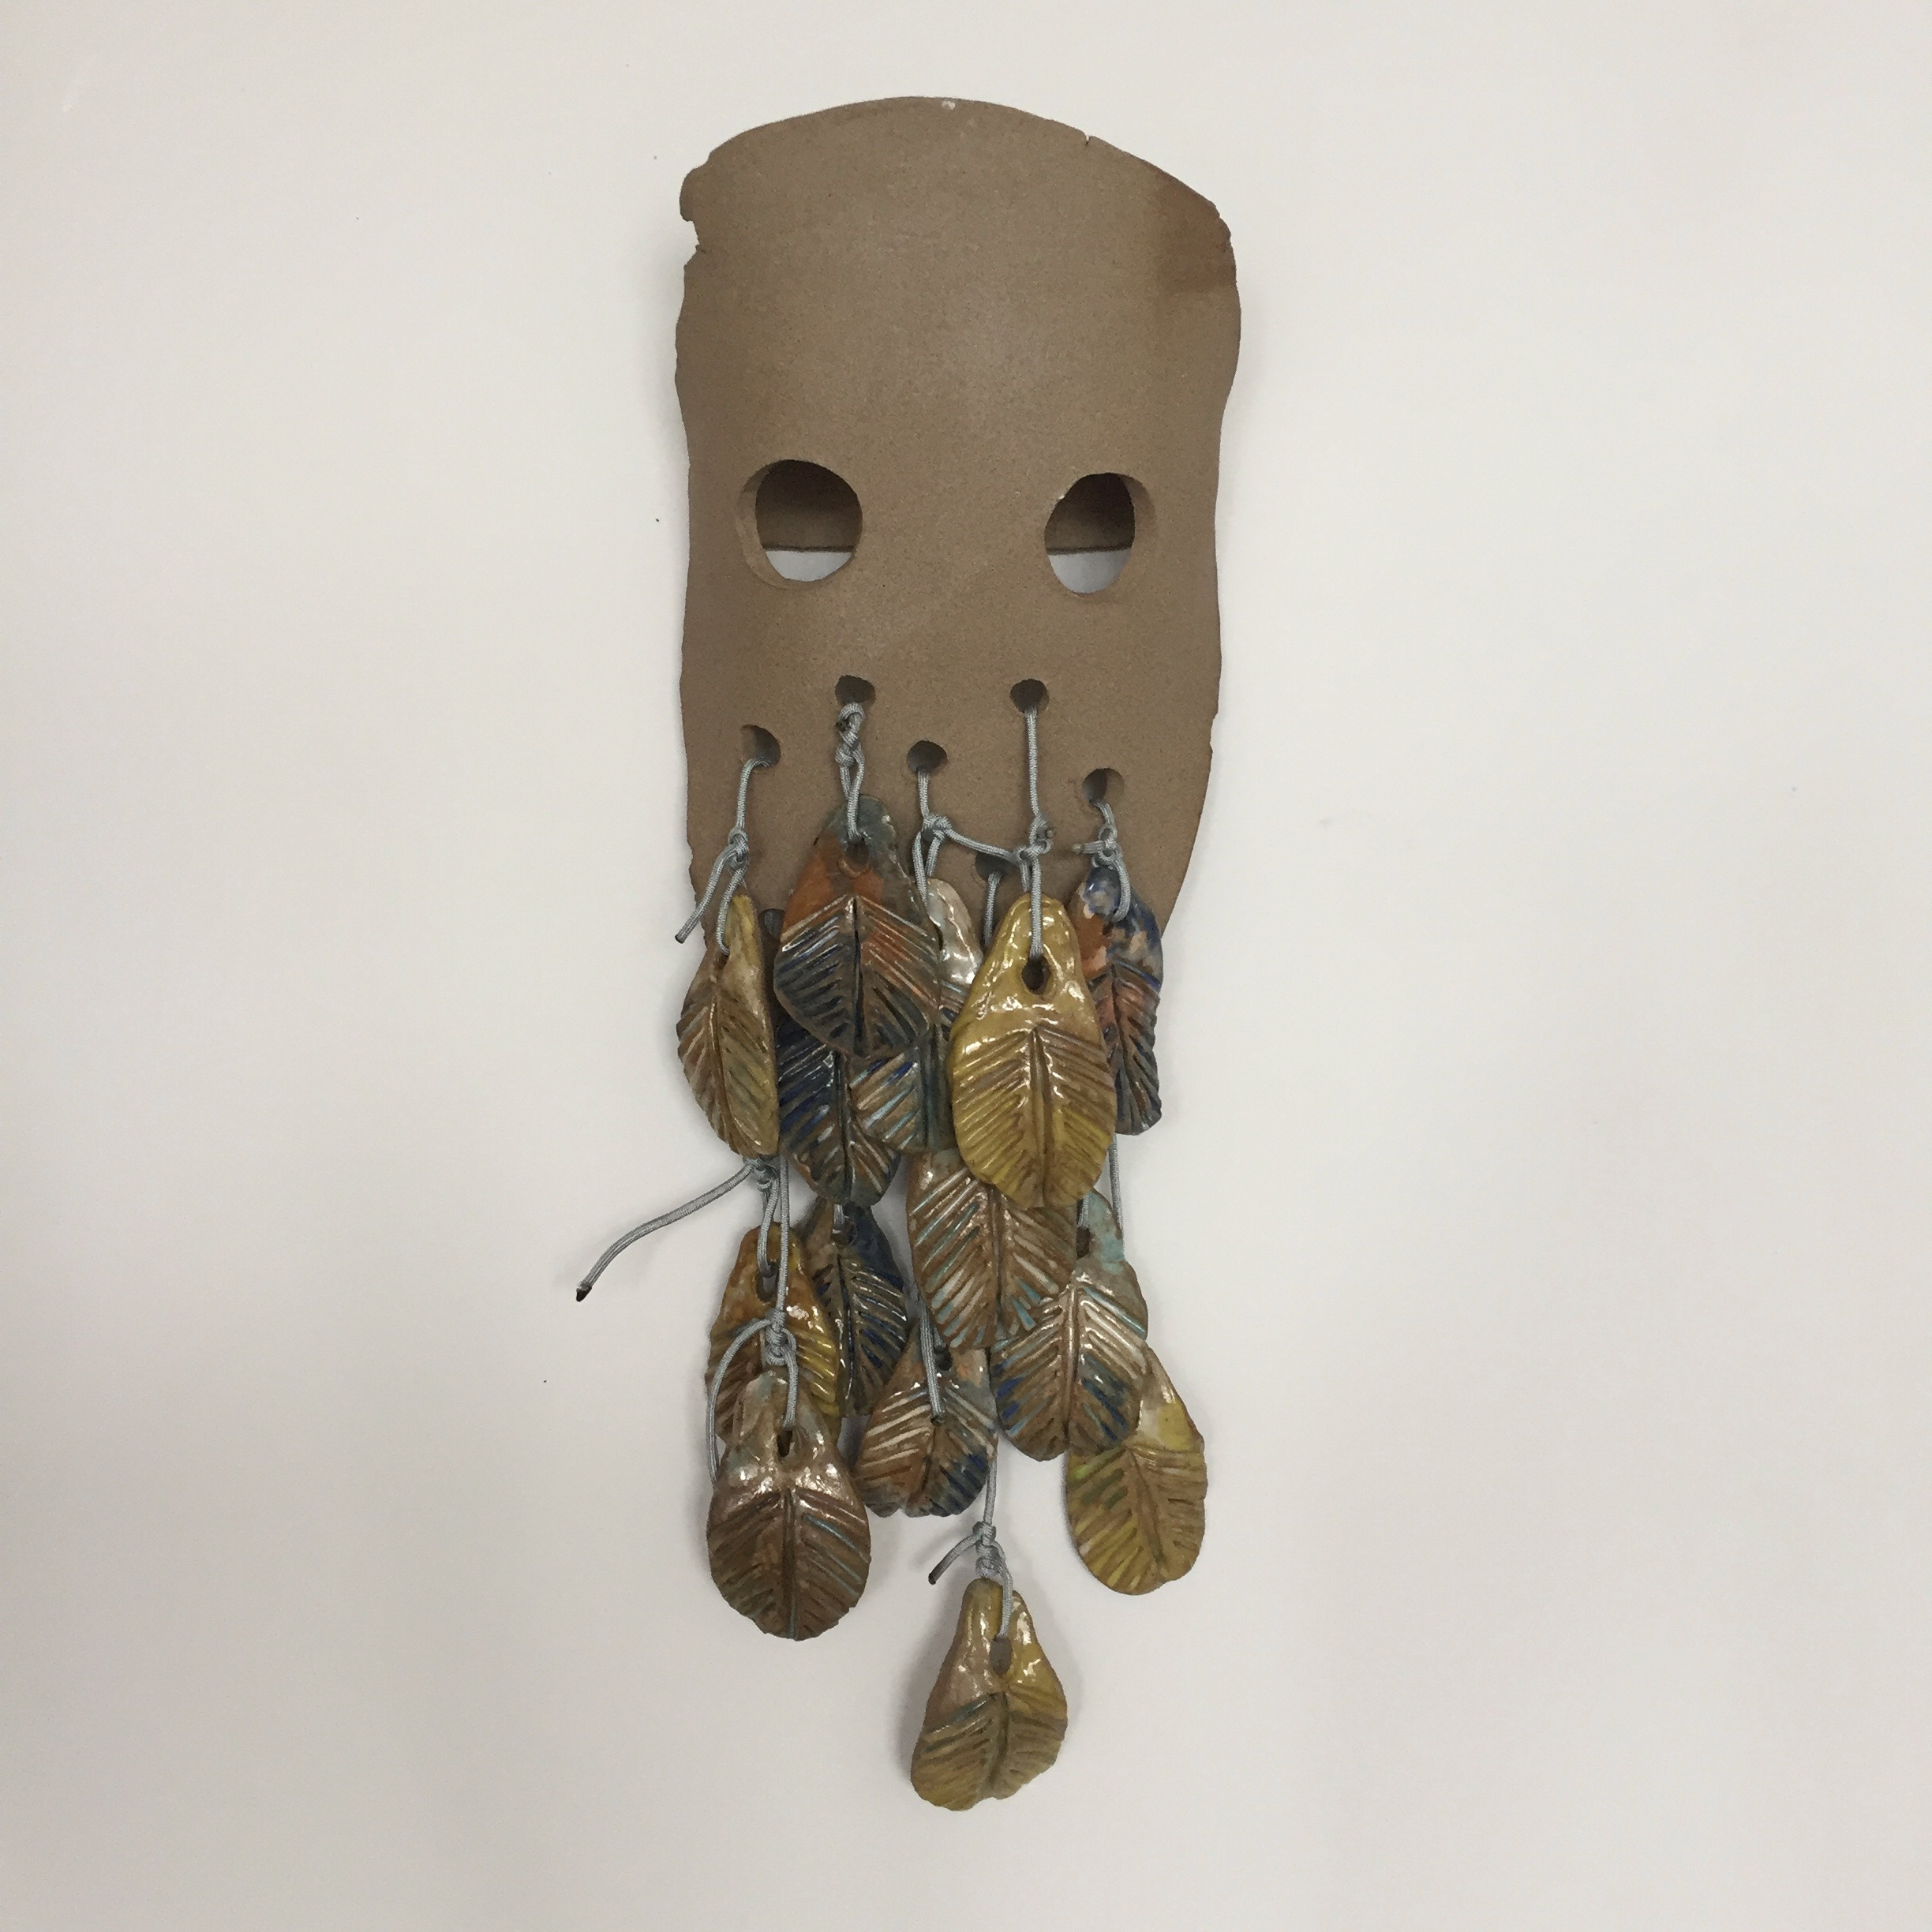 The Thing with Feathers (after Emily Dickinson), 2018, glazed and unglazed ceramic, rope, 24 x 9 x 4 inches